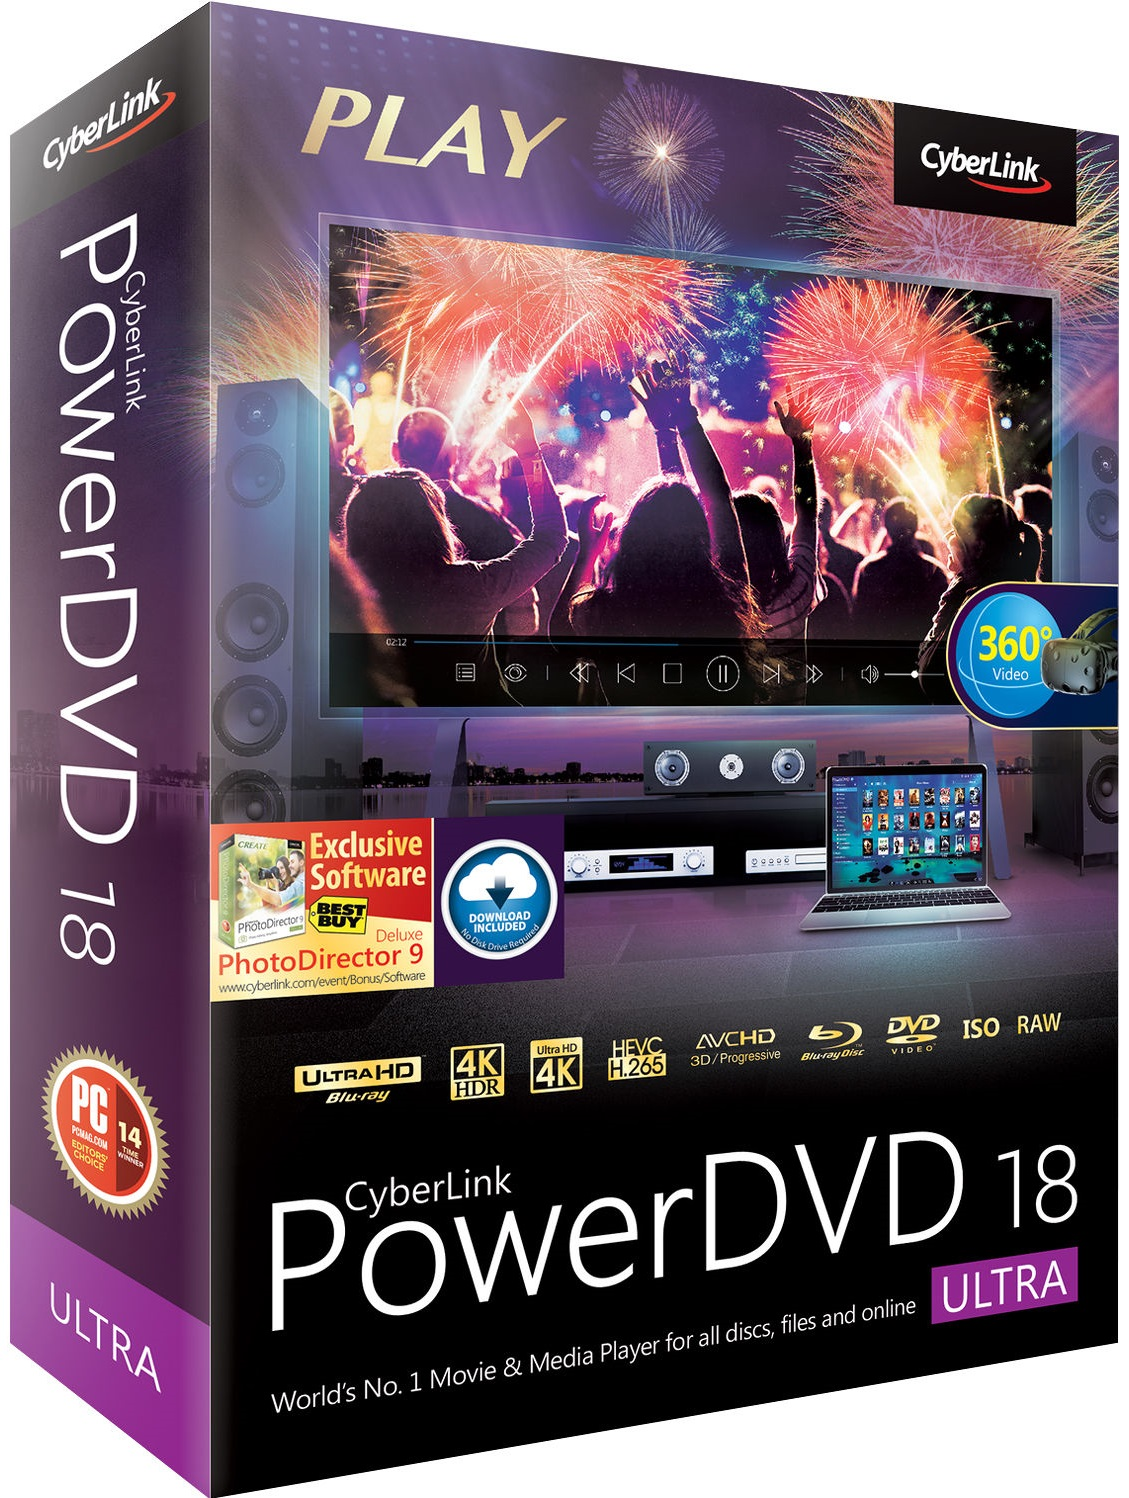 Descargar CyberLink PowerDVD 18 Ultra Full ESPAÑOL MEGA